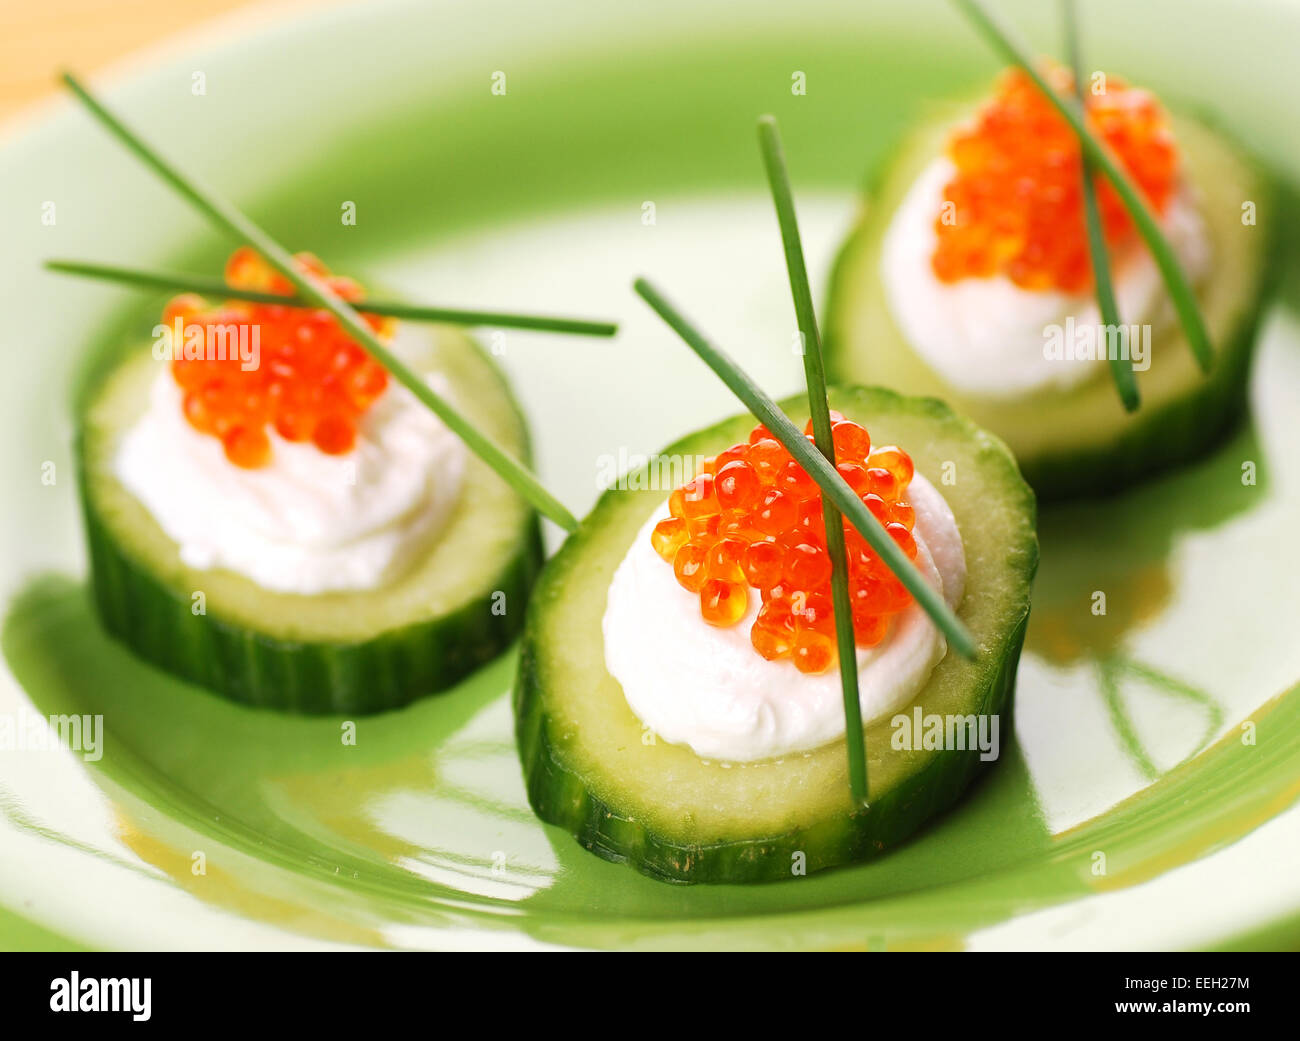 Appetizers with red caviar and a cucumber - Stock Image